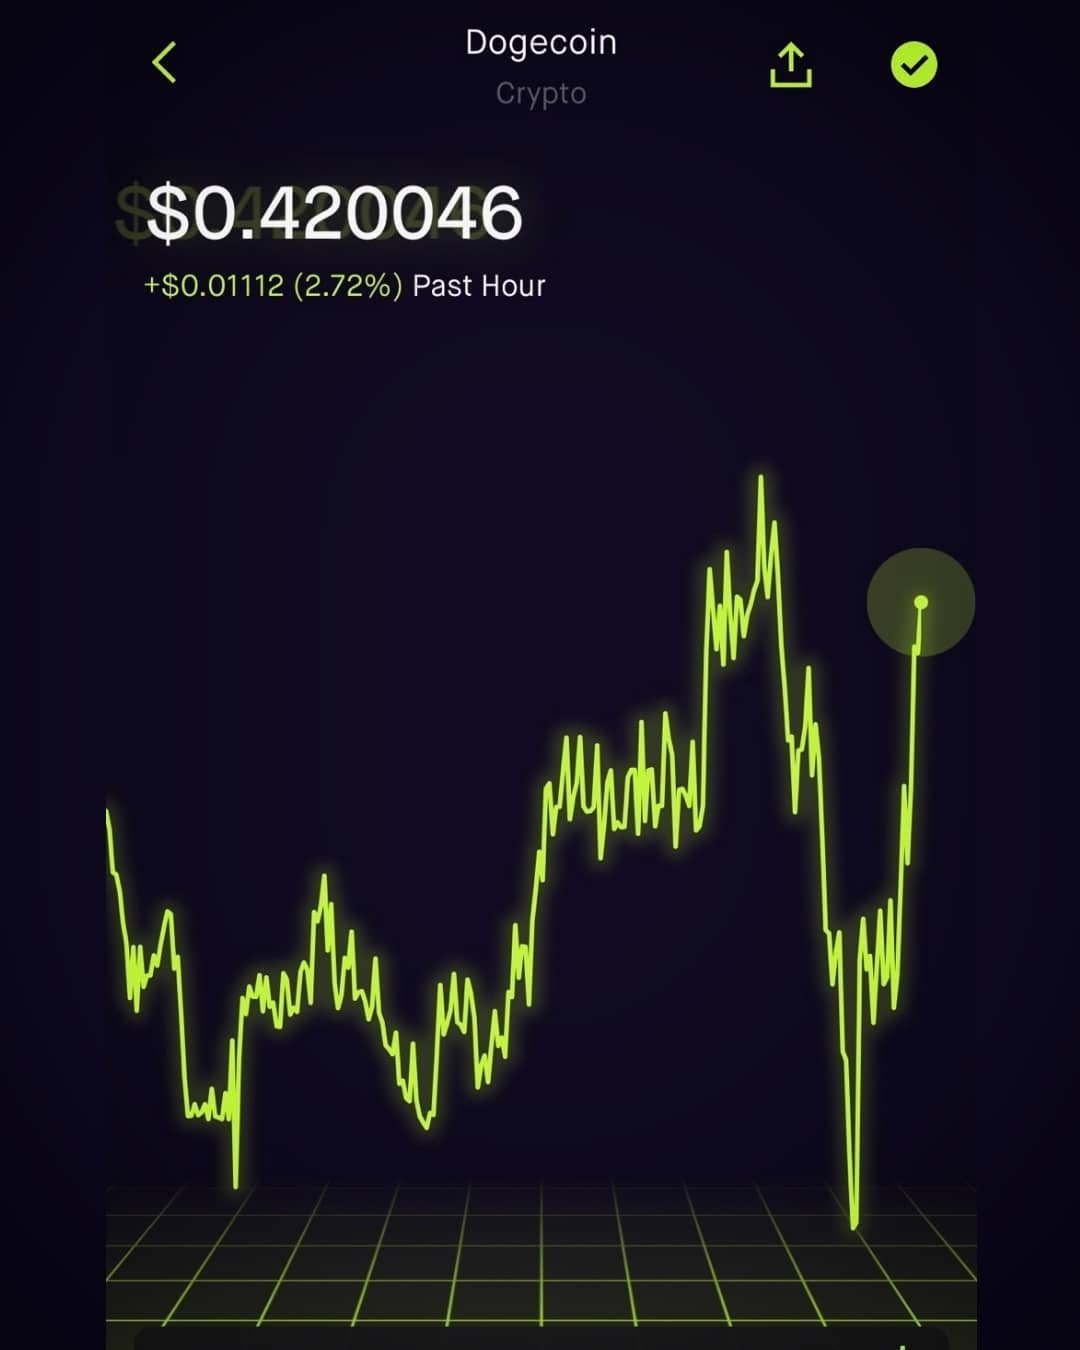 Lets smoke and make some money on 420!  DOGECOIN FTW!